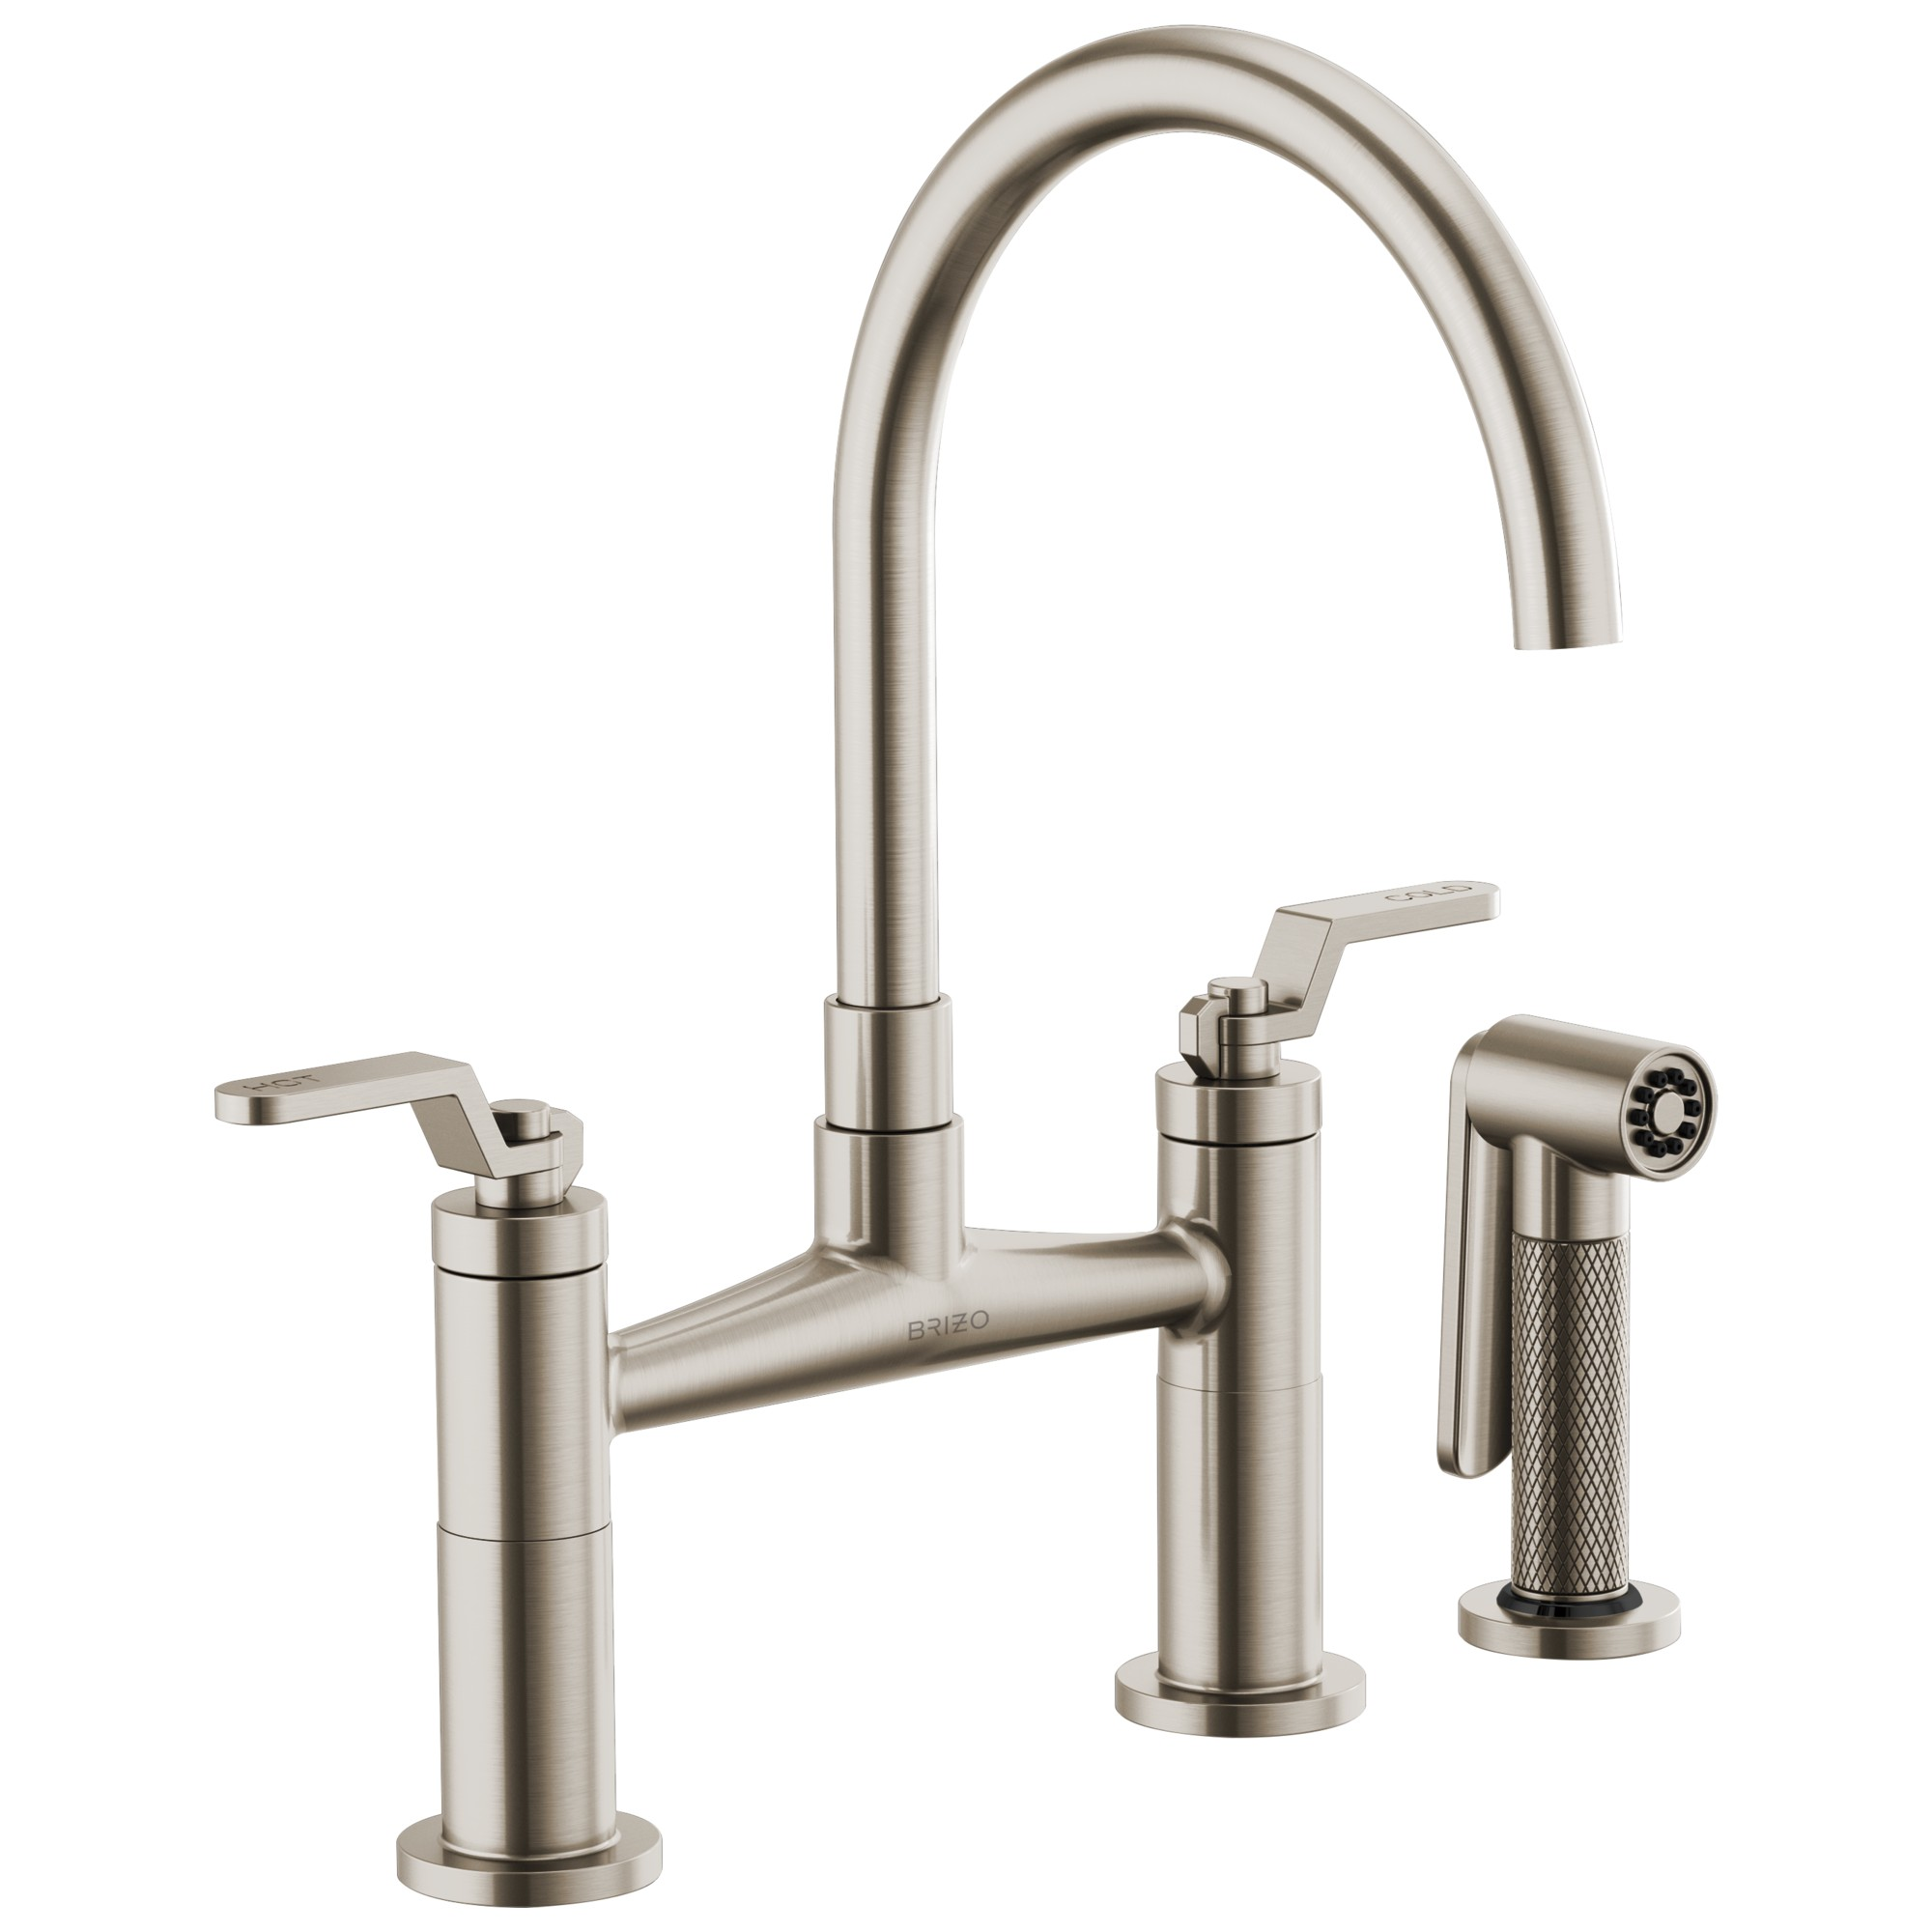 Brizo 62544LF-SS Litze Bridge Faucet with Arc Spout and Industrial Handle - Stainless